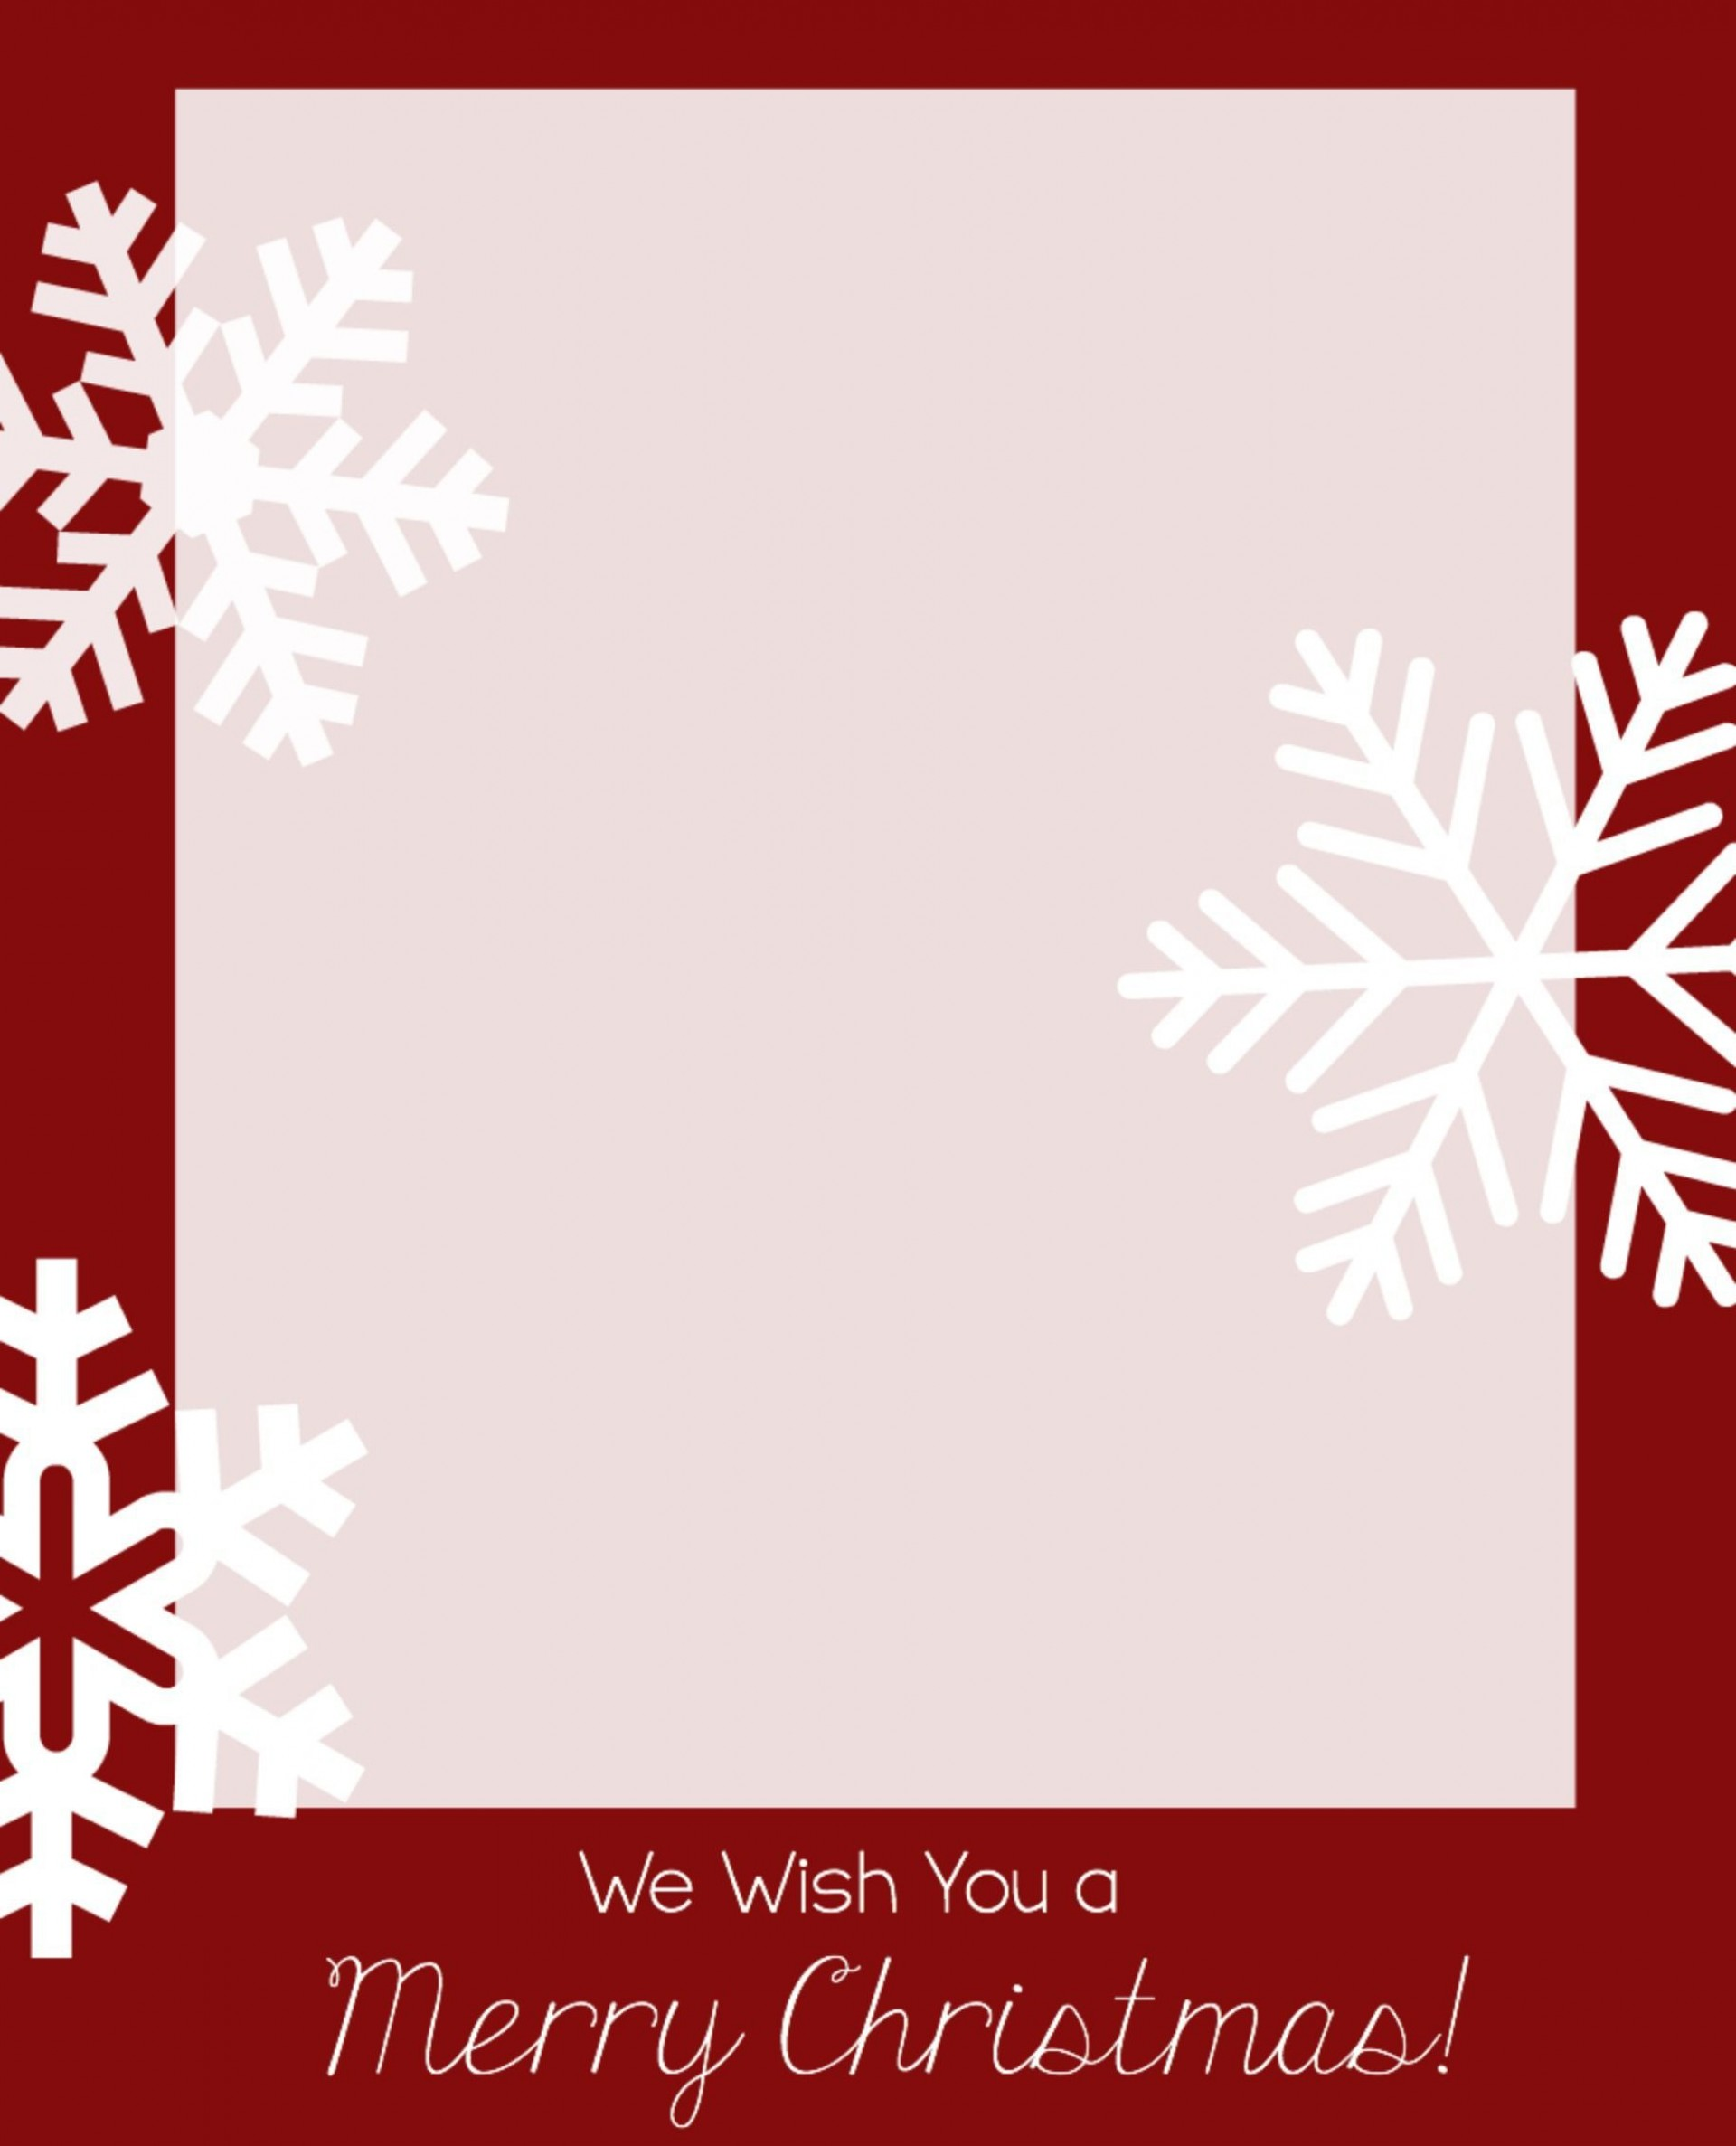 005 Simple Christma Card Template Free Download Photo  Xma Place1920